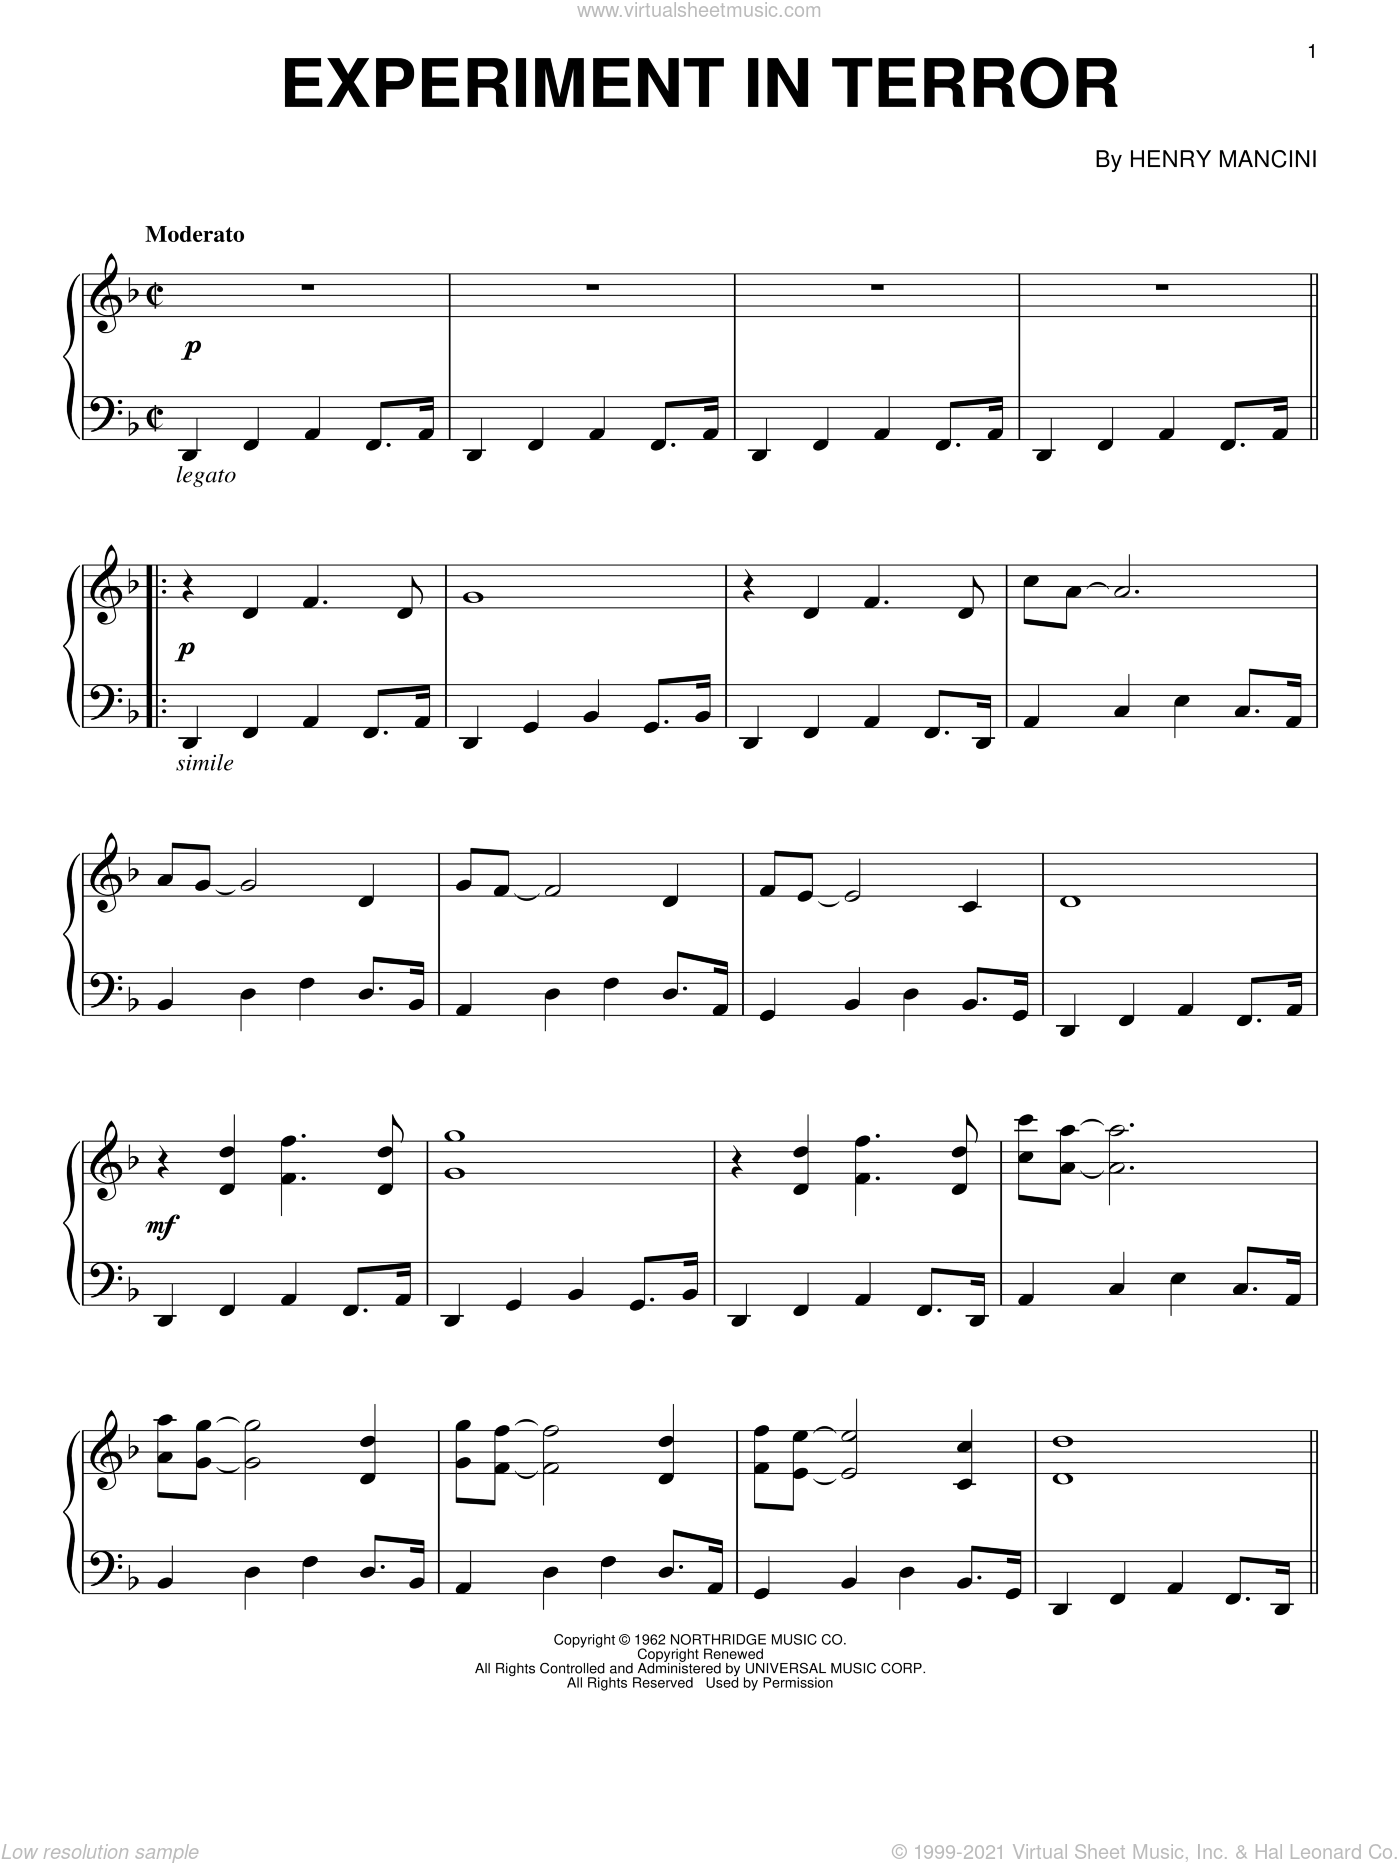 Experiment In Terror sheet music for piano solo by Henry Mancini, intermediate skill level